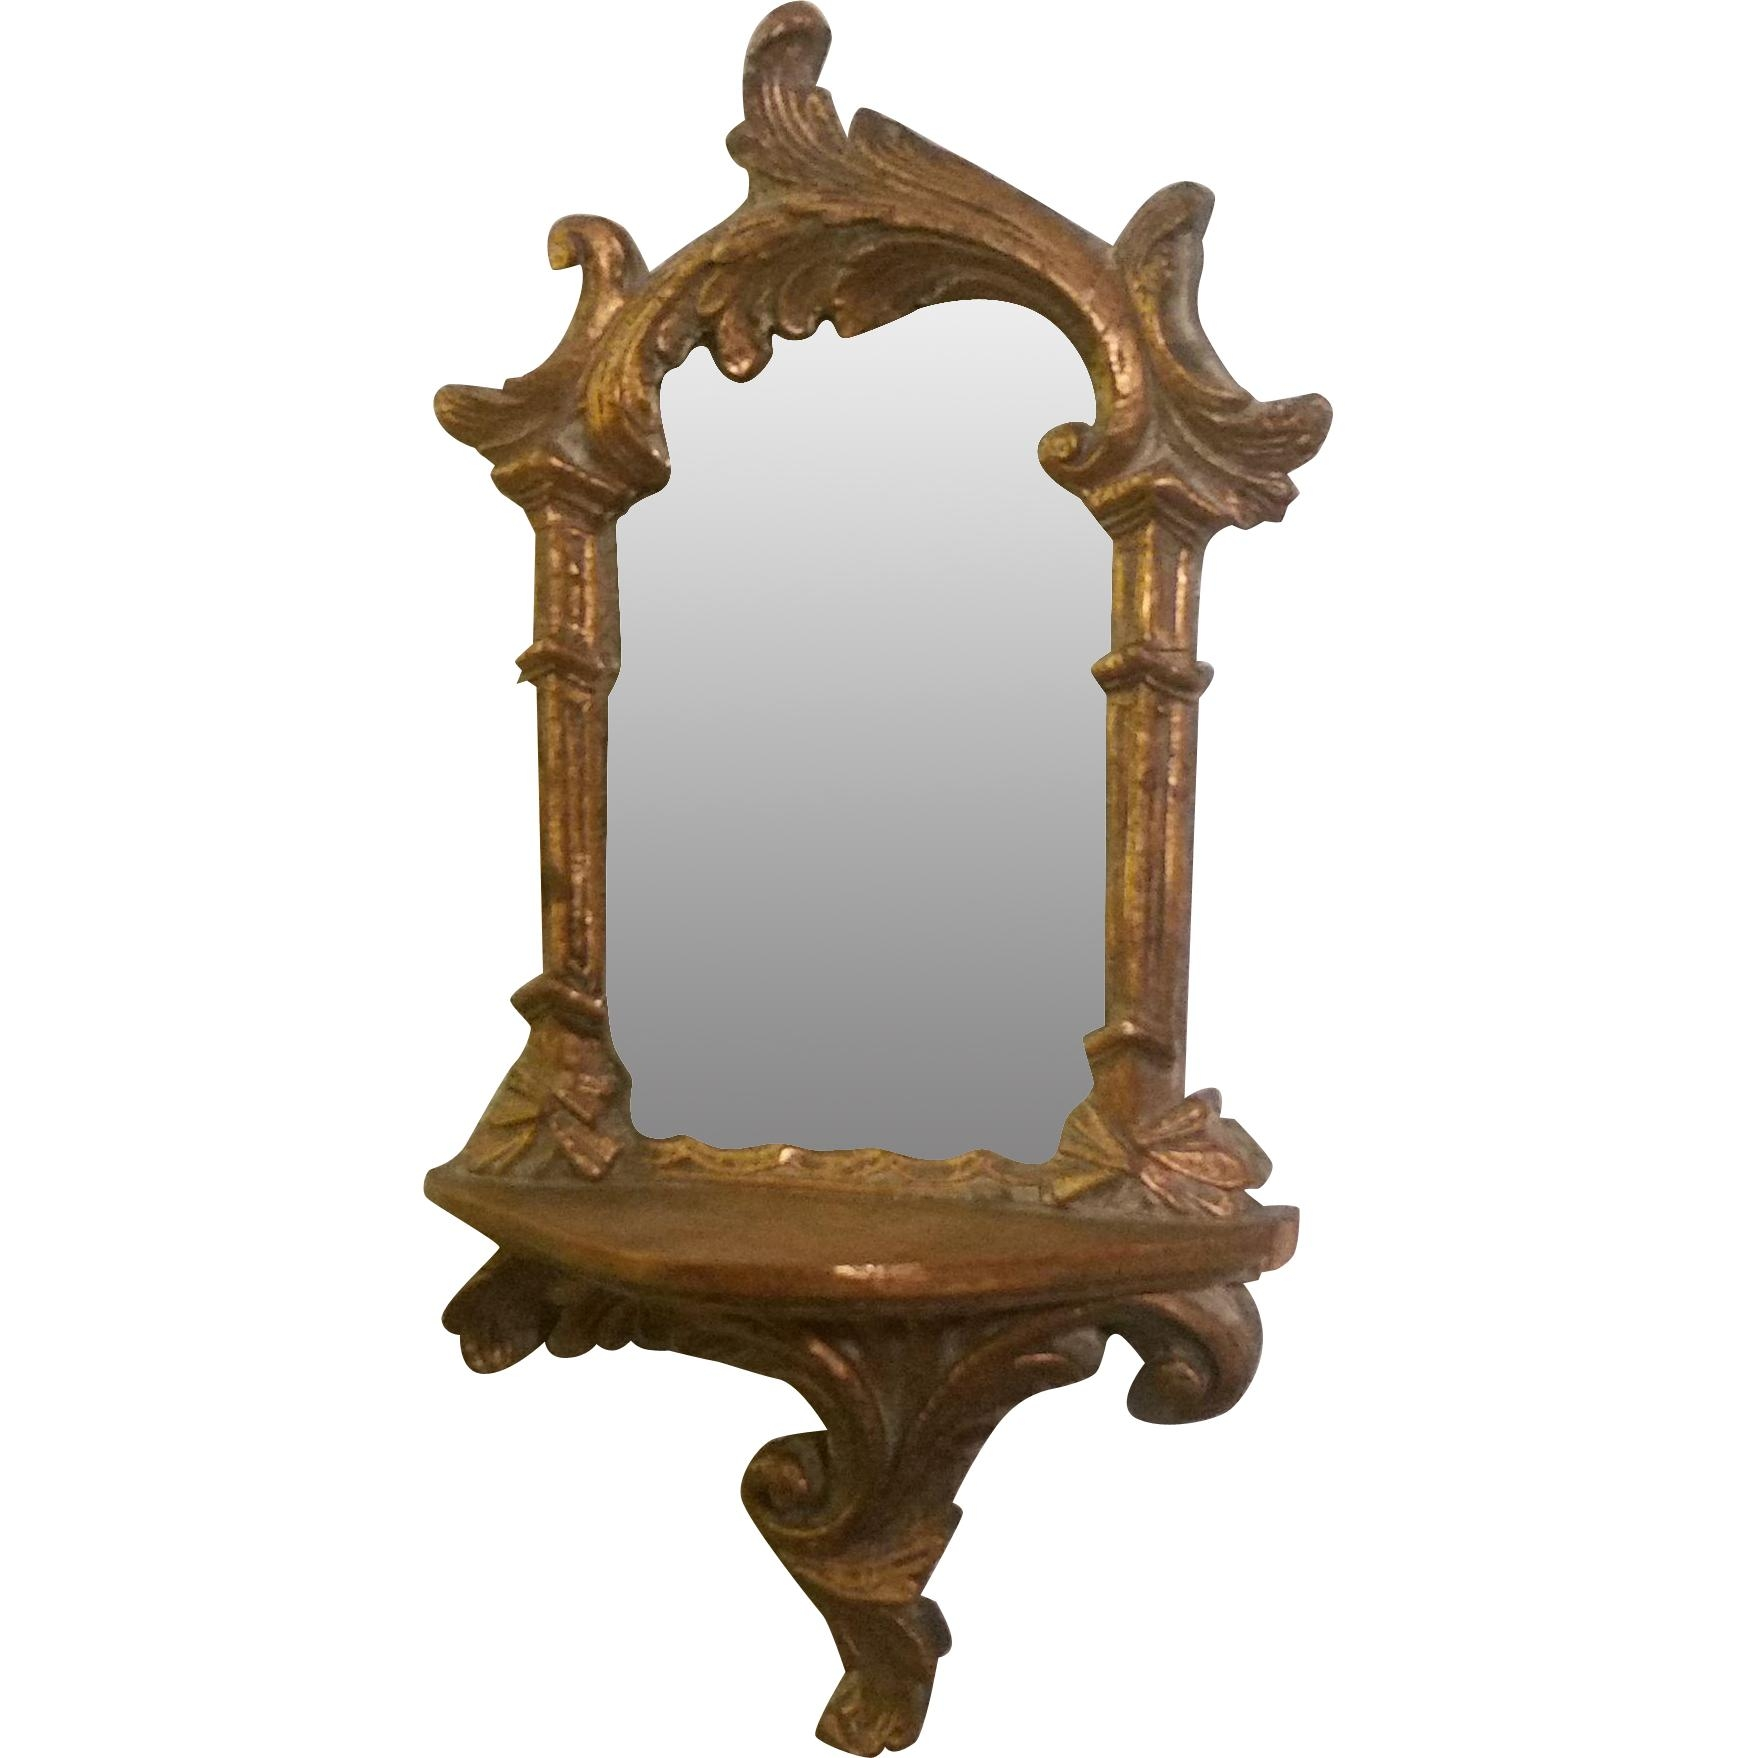 Vintage Wood Hand Carved Small Gilt Wall Mirror From Second Time Regarding Antique Wall Mirror (Photo 15 of 20)